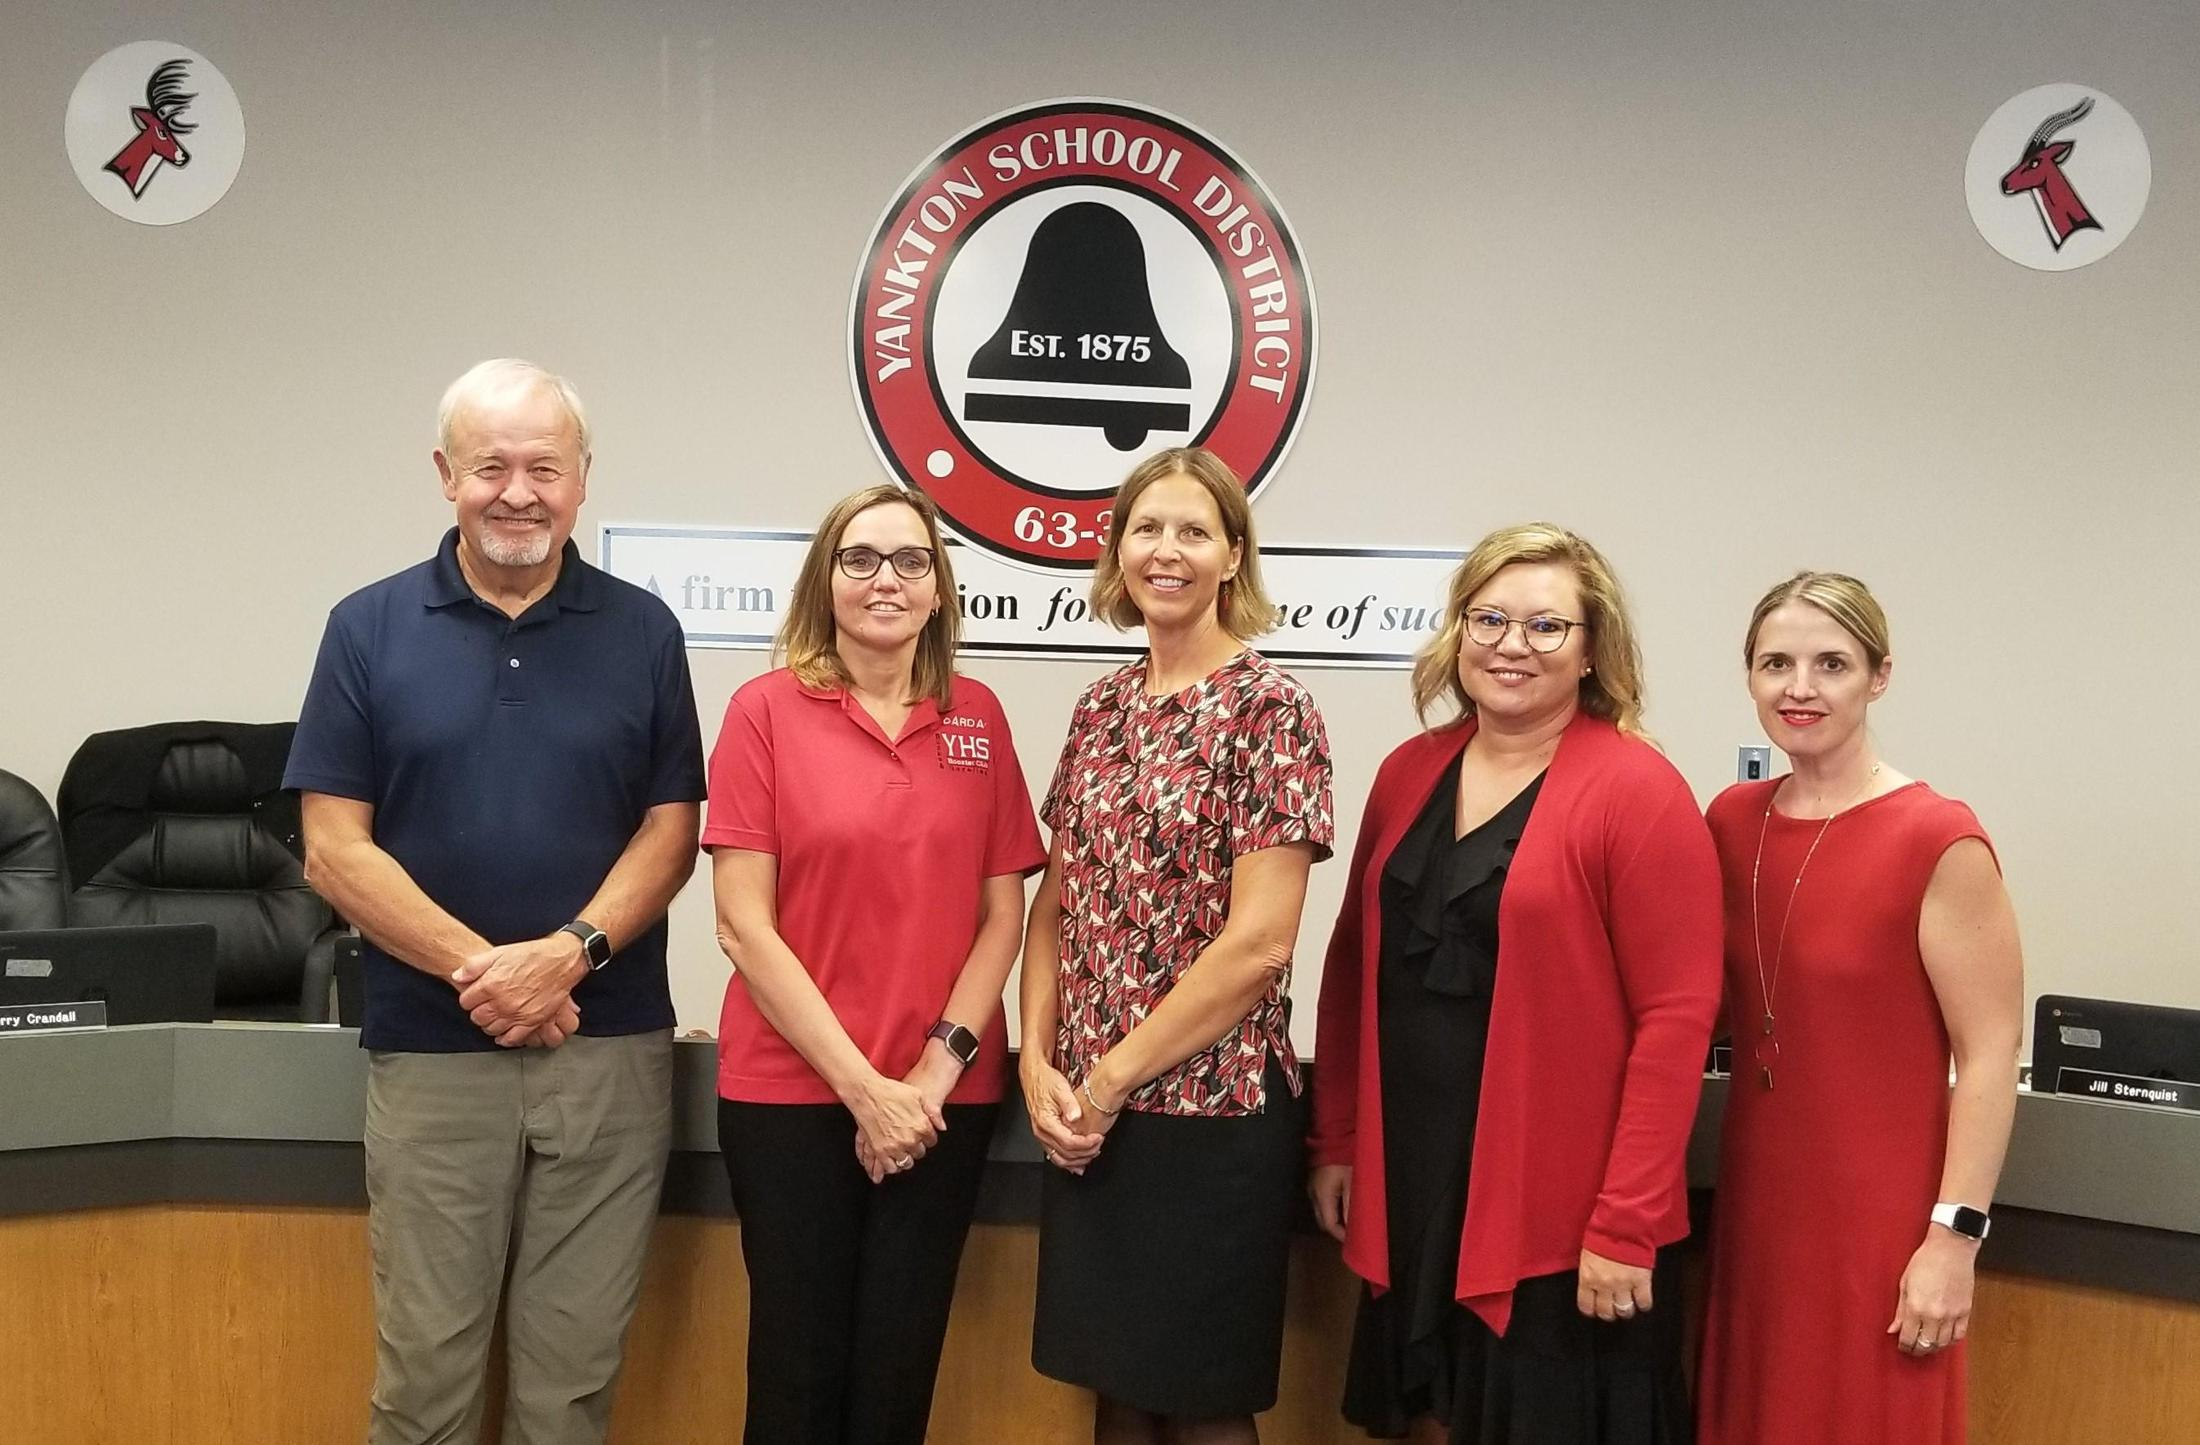 Yankton School District Receives National Recognition